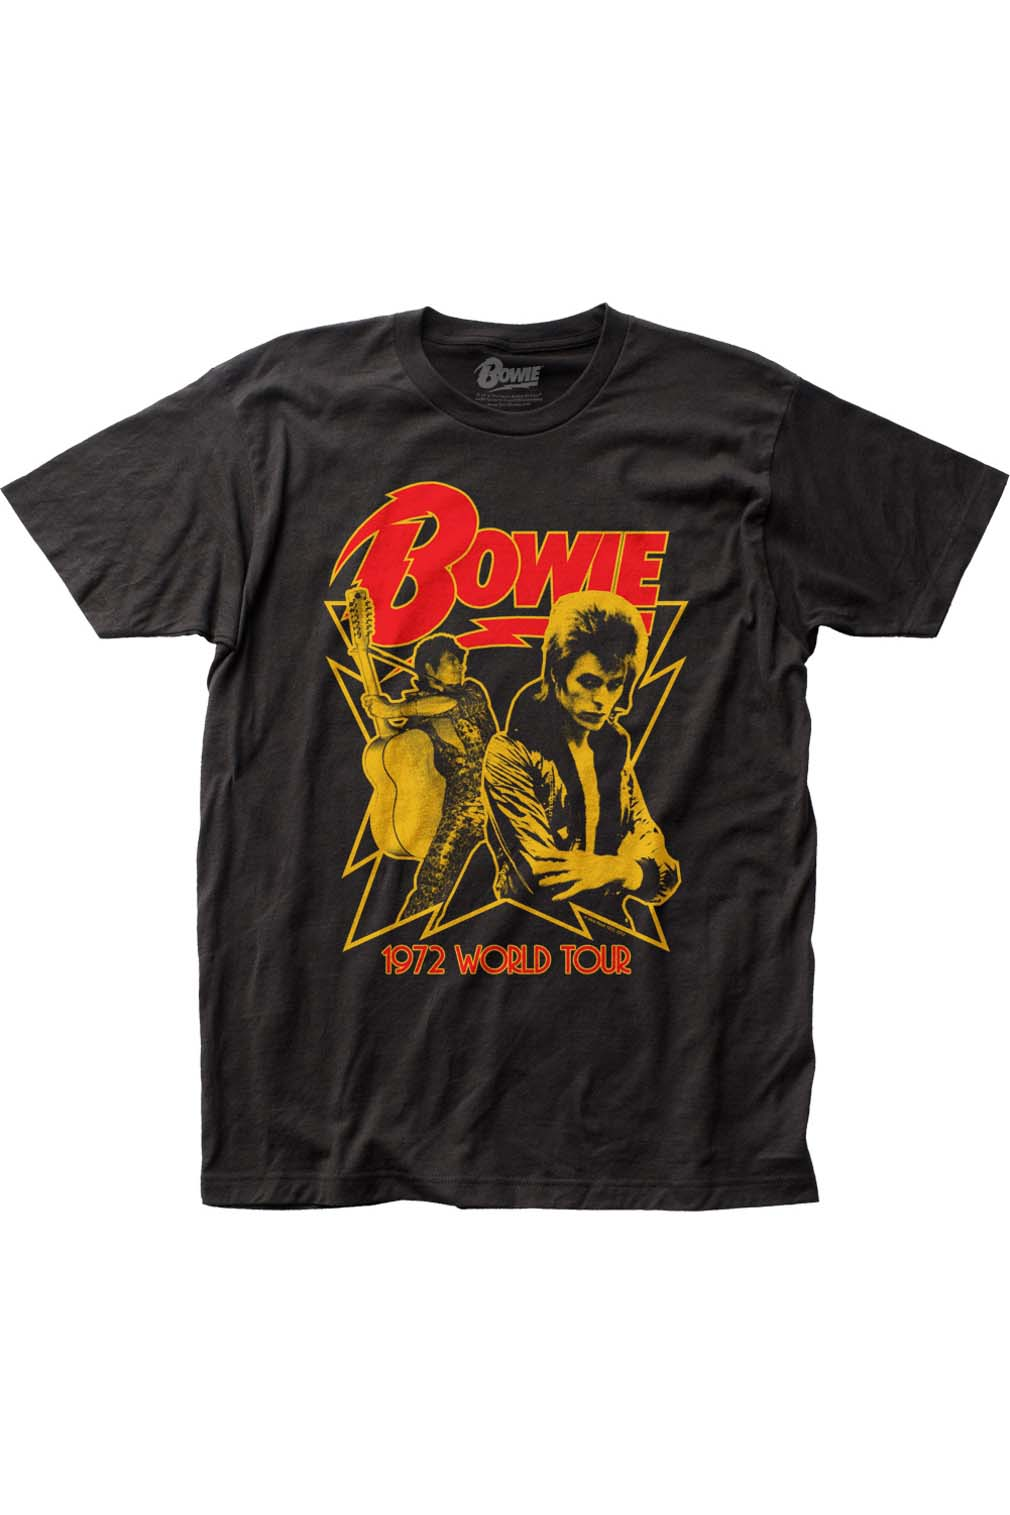 David Bowie 1972 World Tour T-Shirt